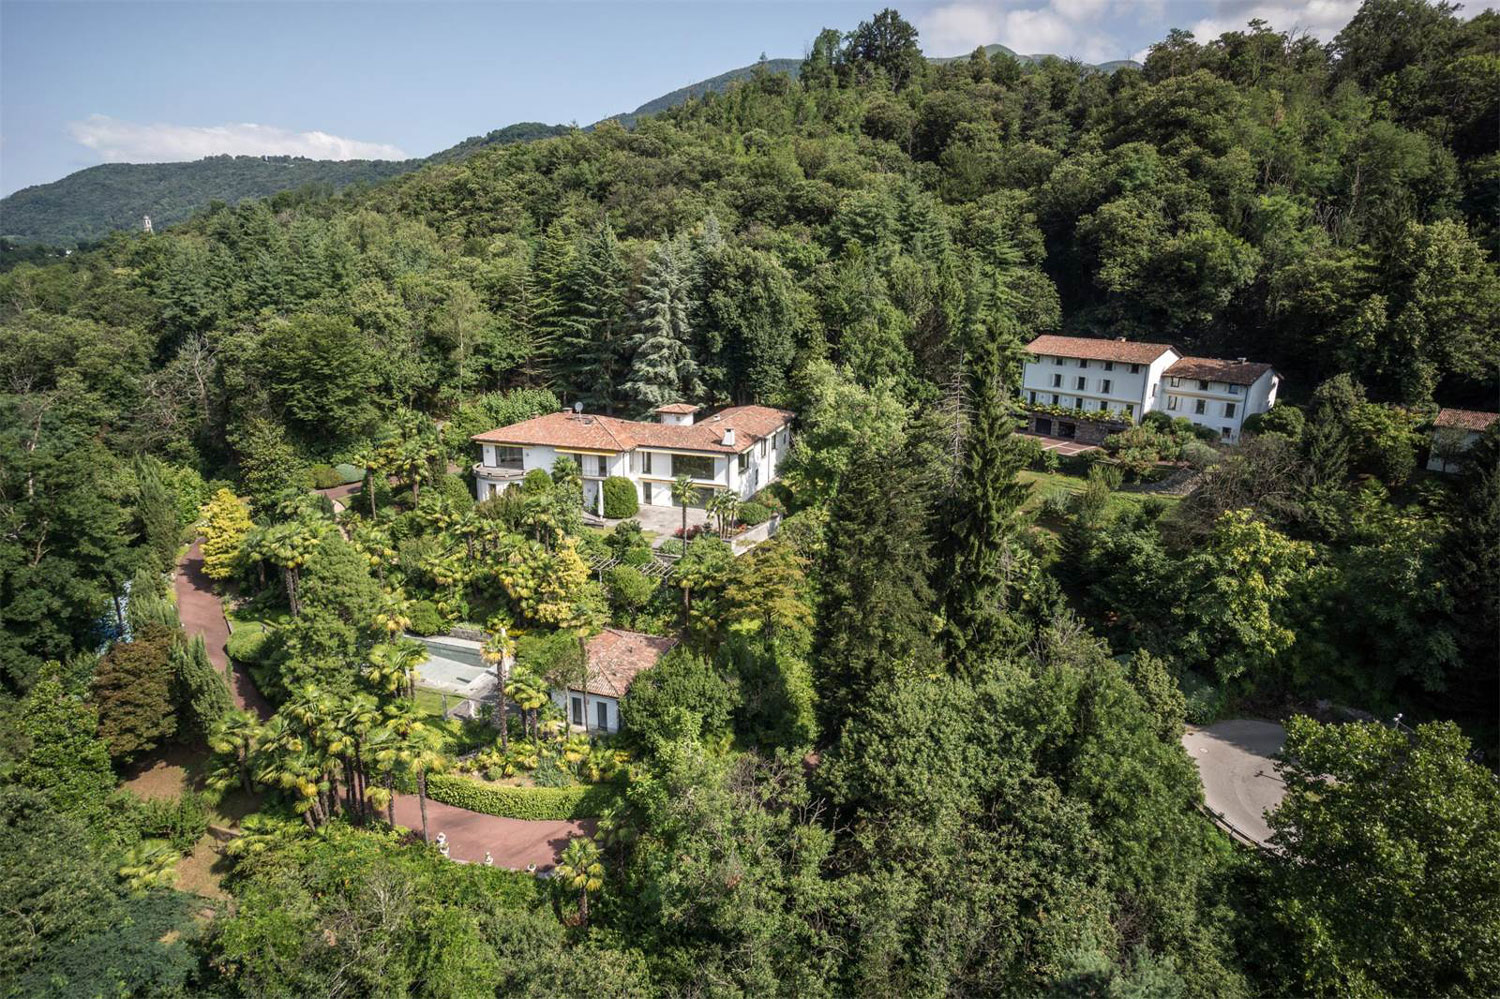 This secluded compound near Lake Lugano is akin to a Bond villain's lair, thanks to its Space Age amenities and decadent Sixties décor.